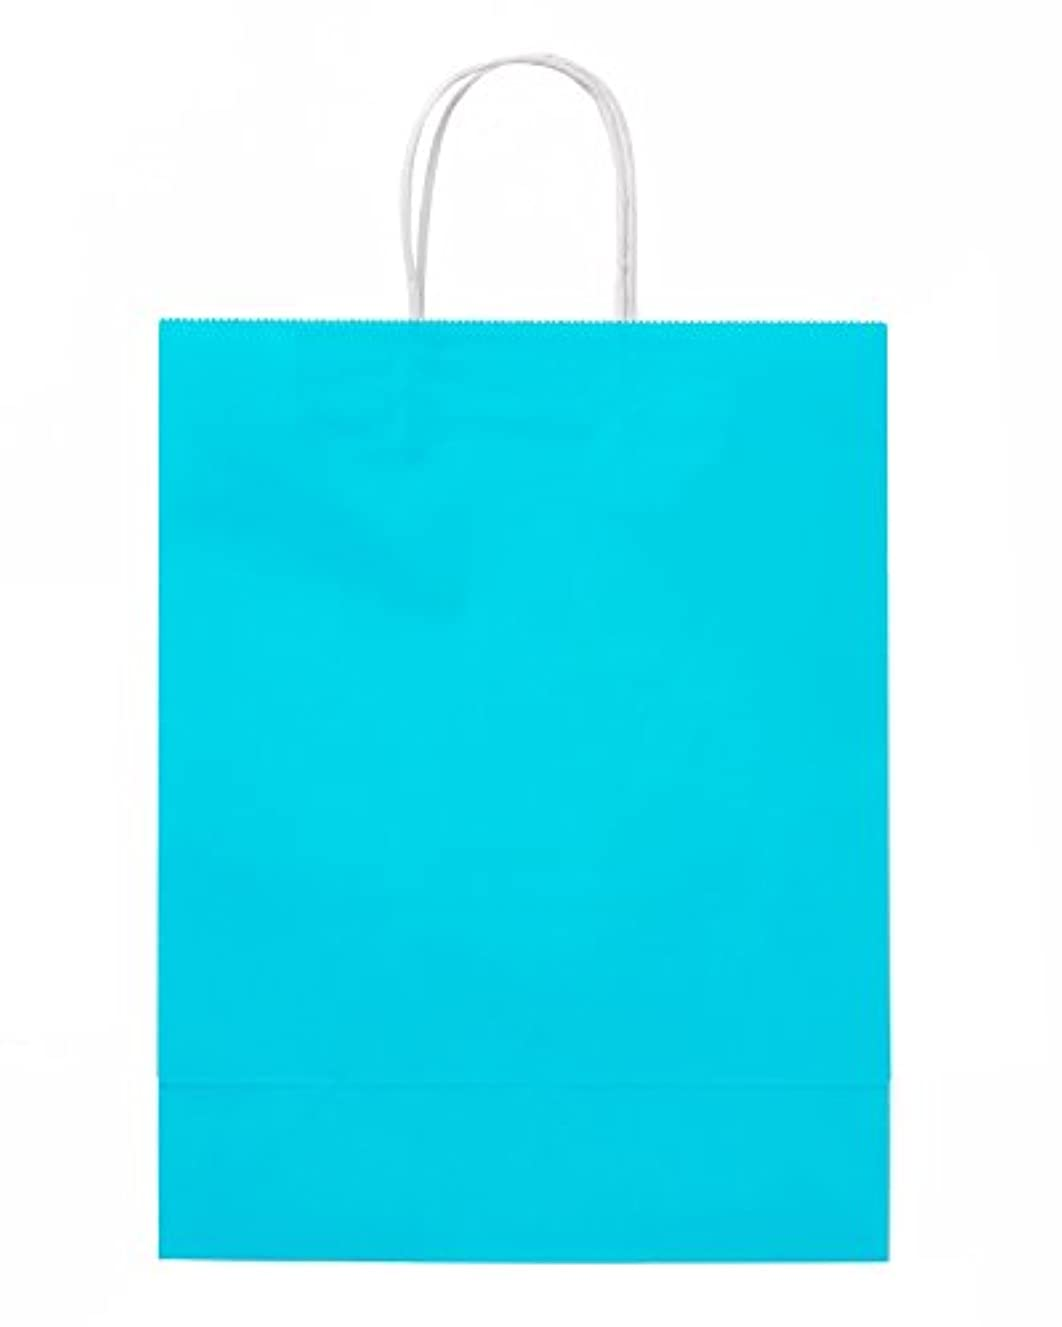 American Greetings Gift Bag Medium - Aqua